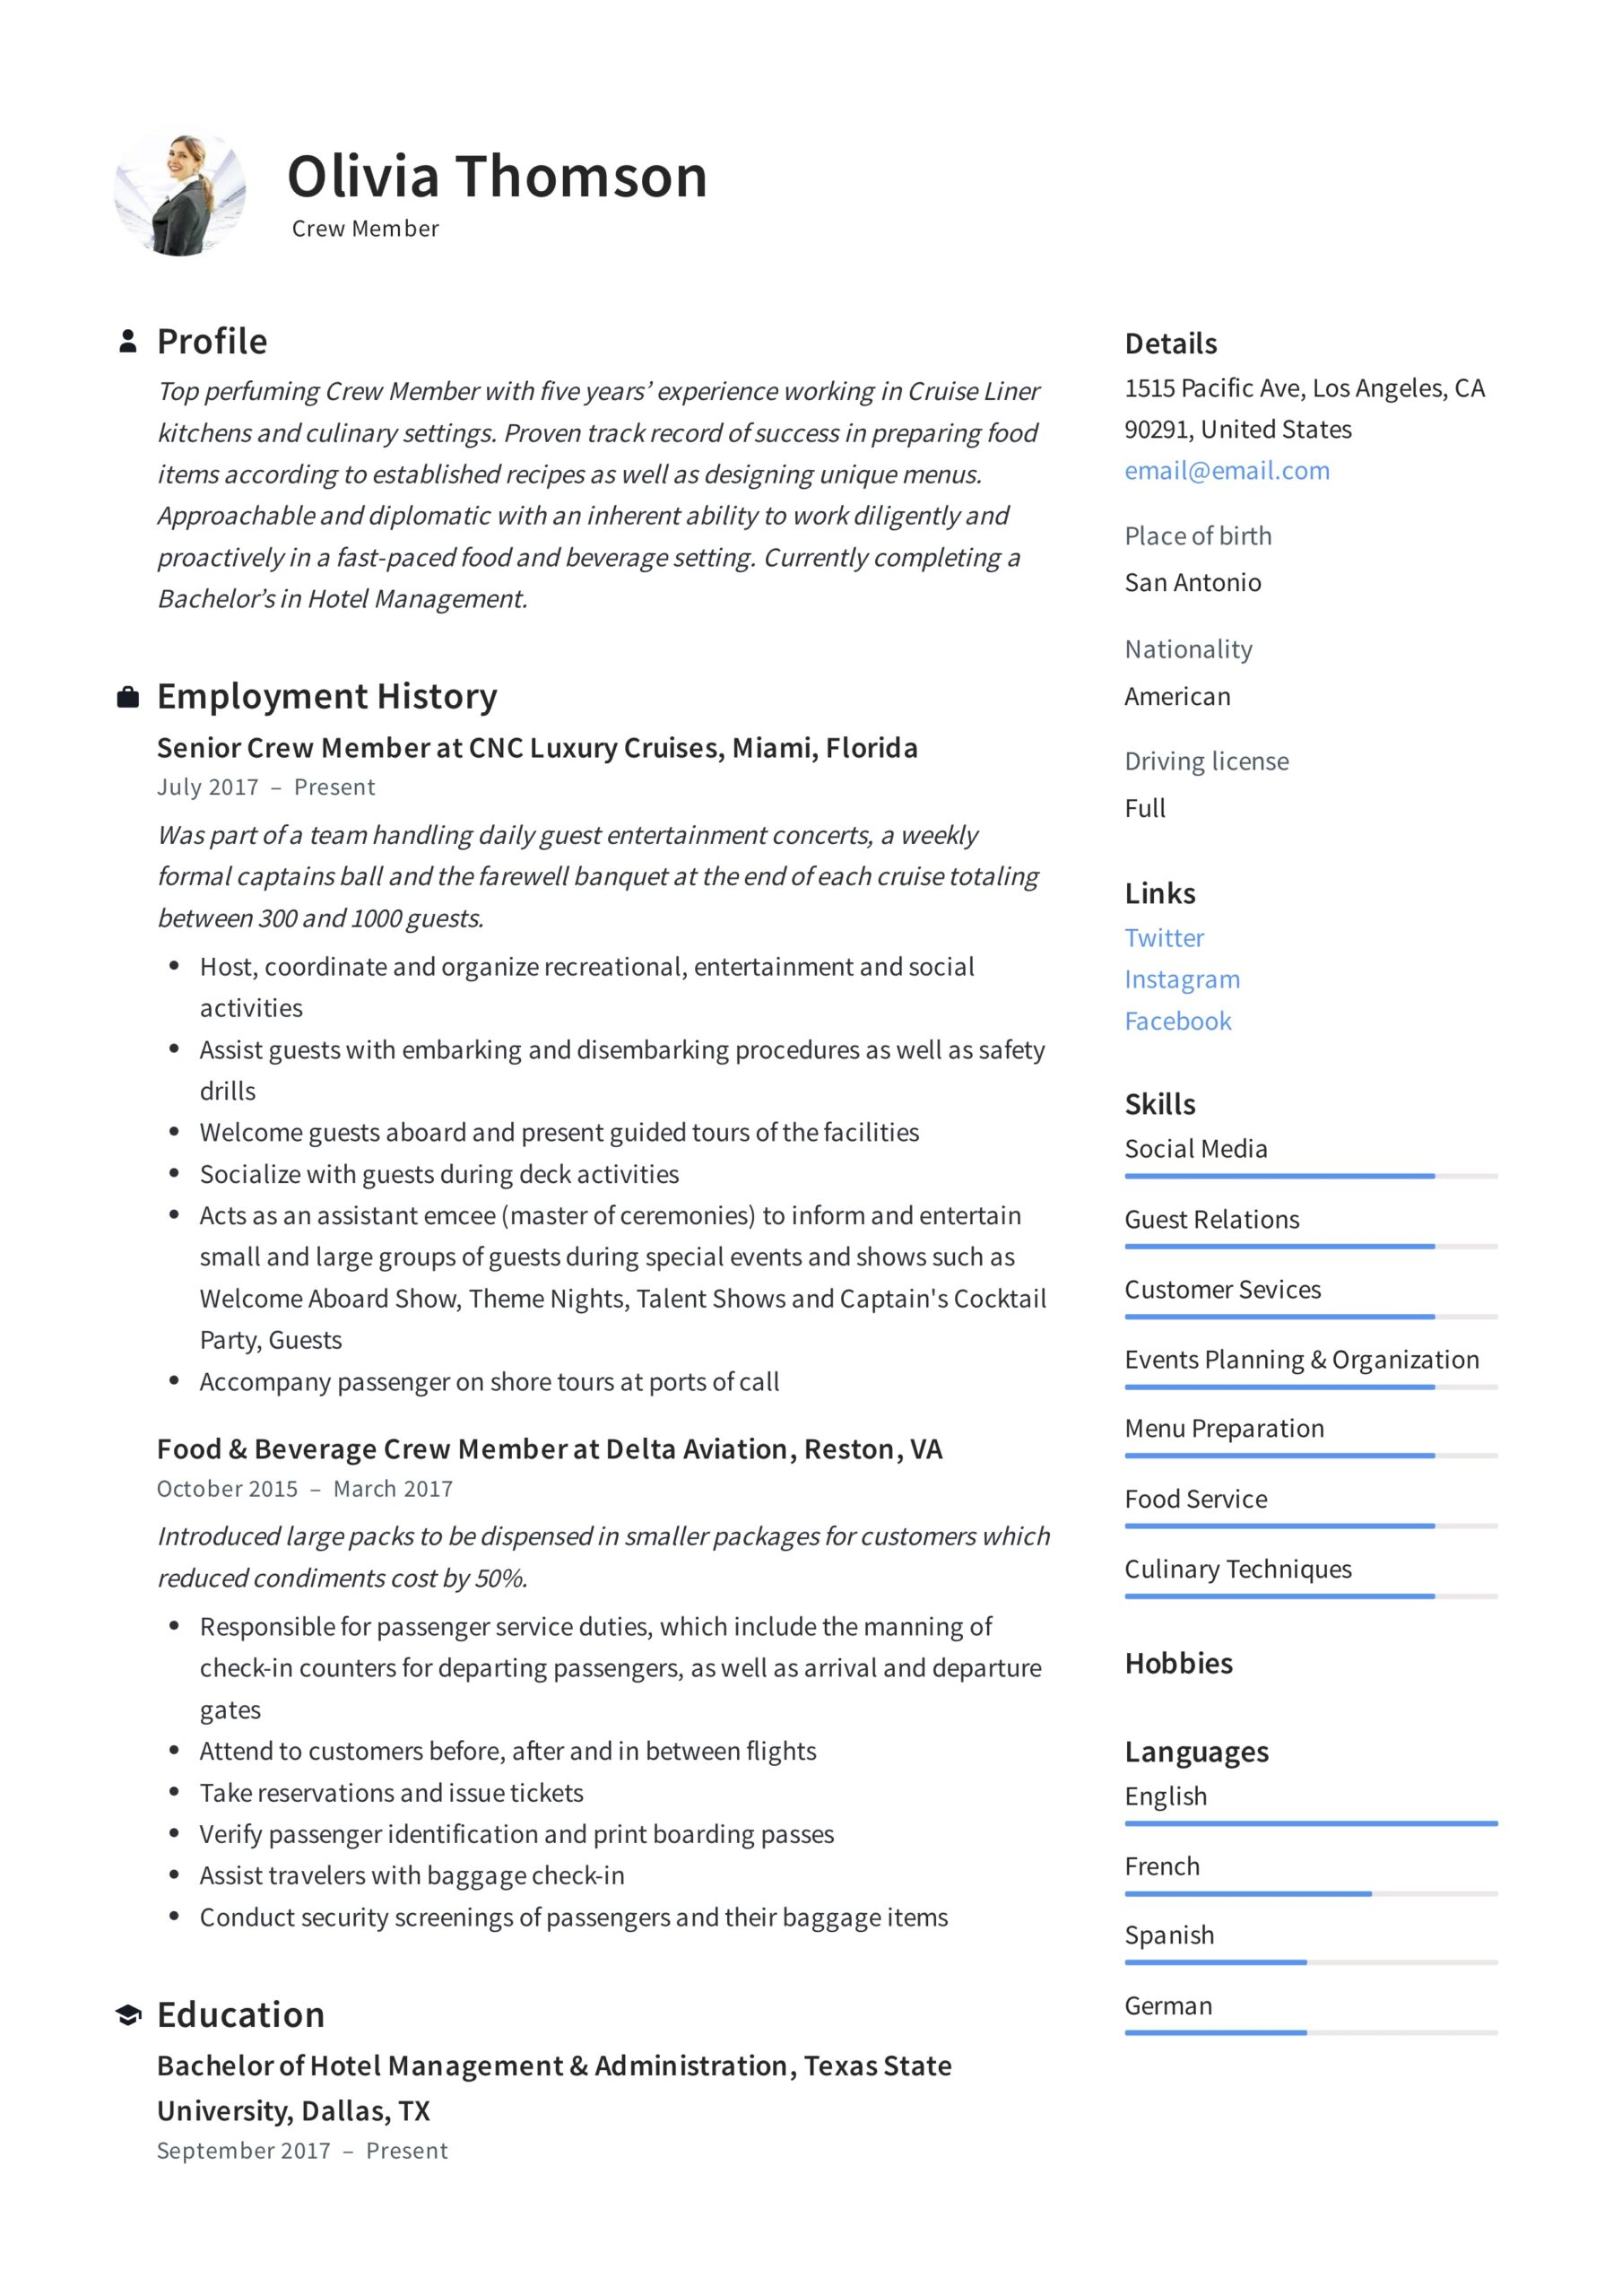 crew member resume writing guide examples fast food job description for olivia thomson Resume Fast Food Crew Member Job Description For Resume